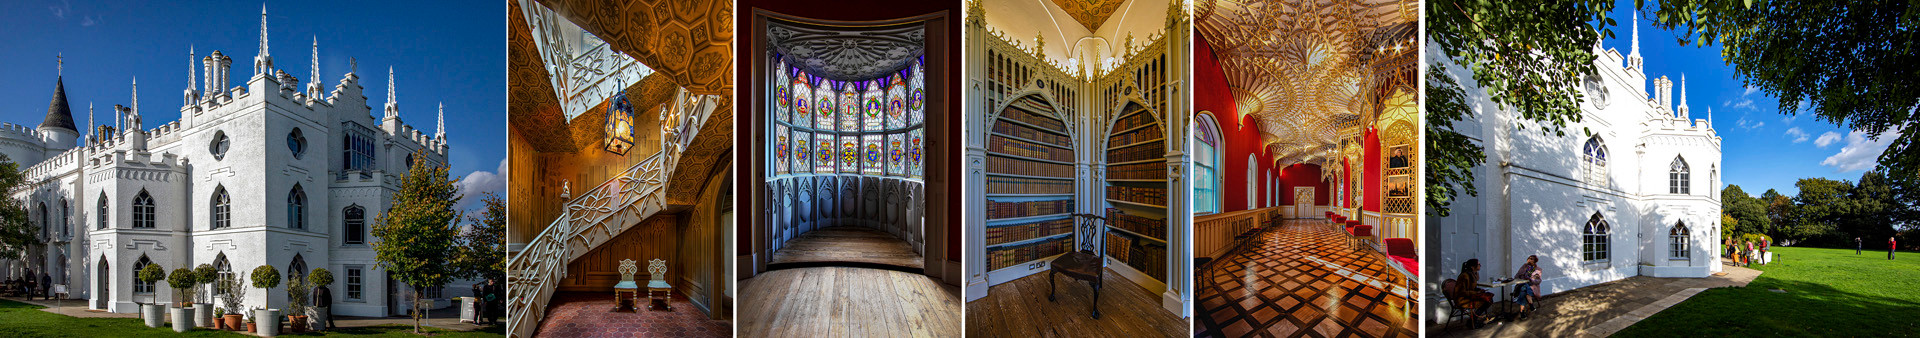 18 STRAWBERRY HILL HOUSE by Philip Easom